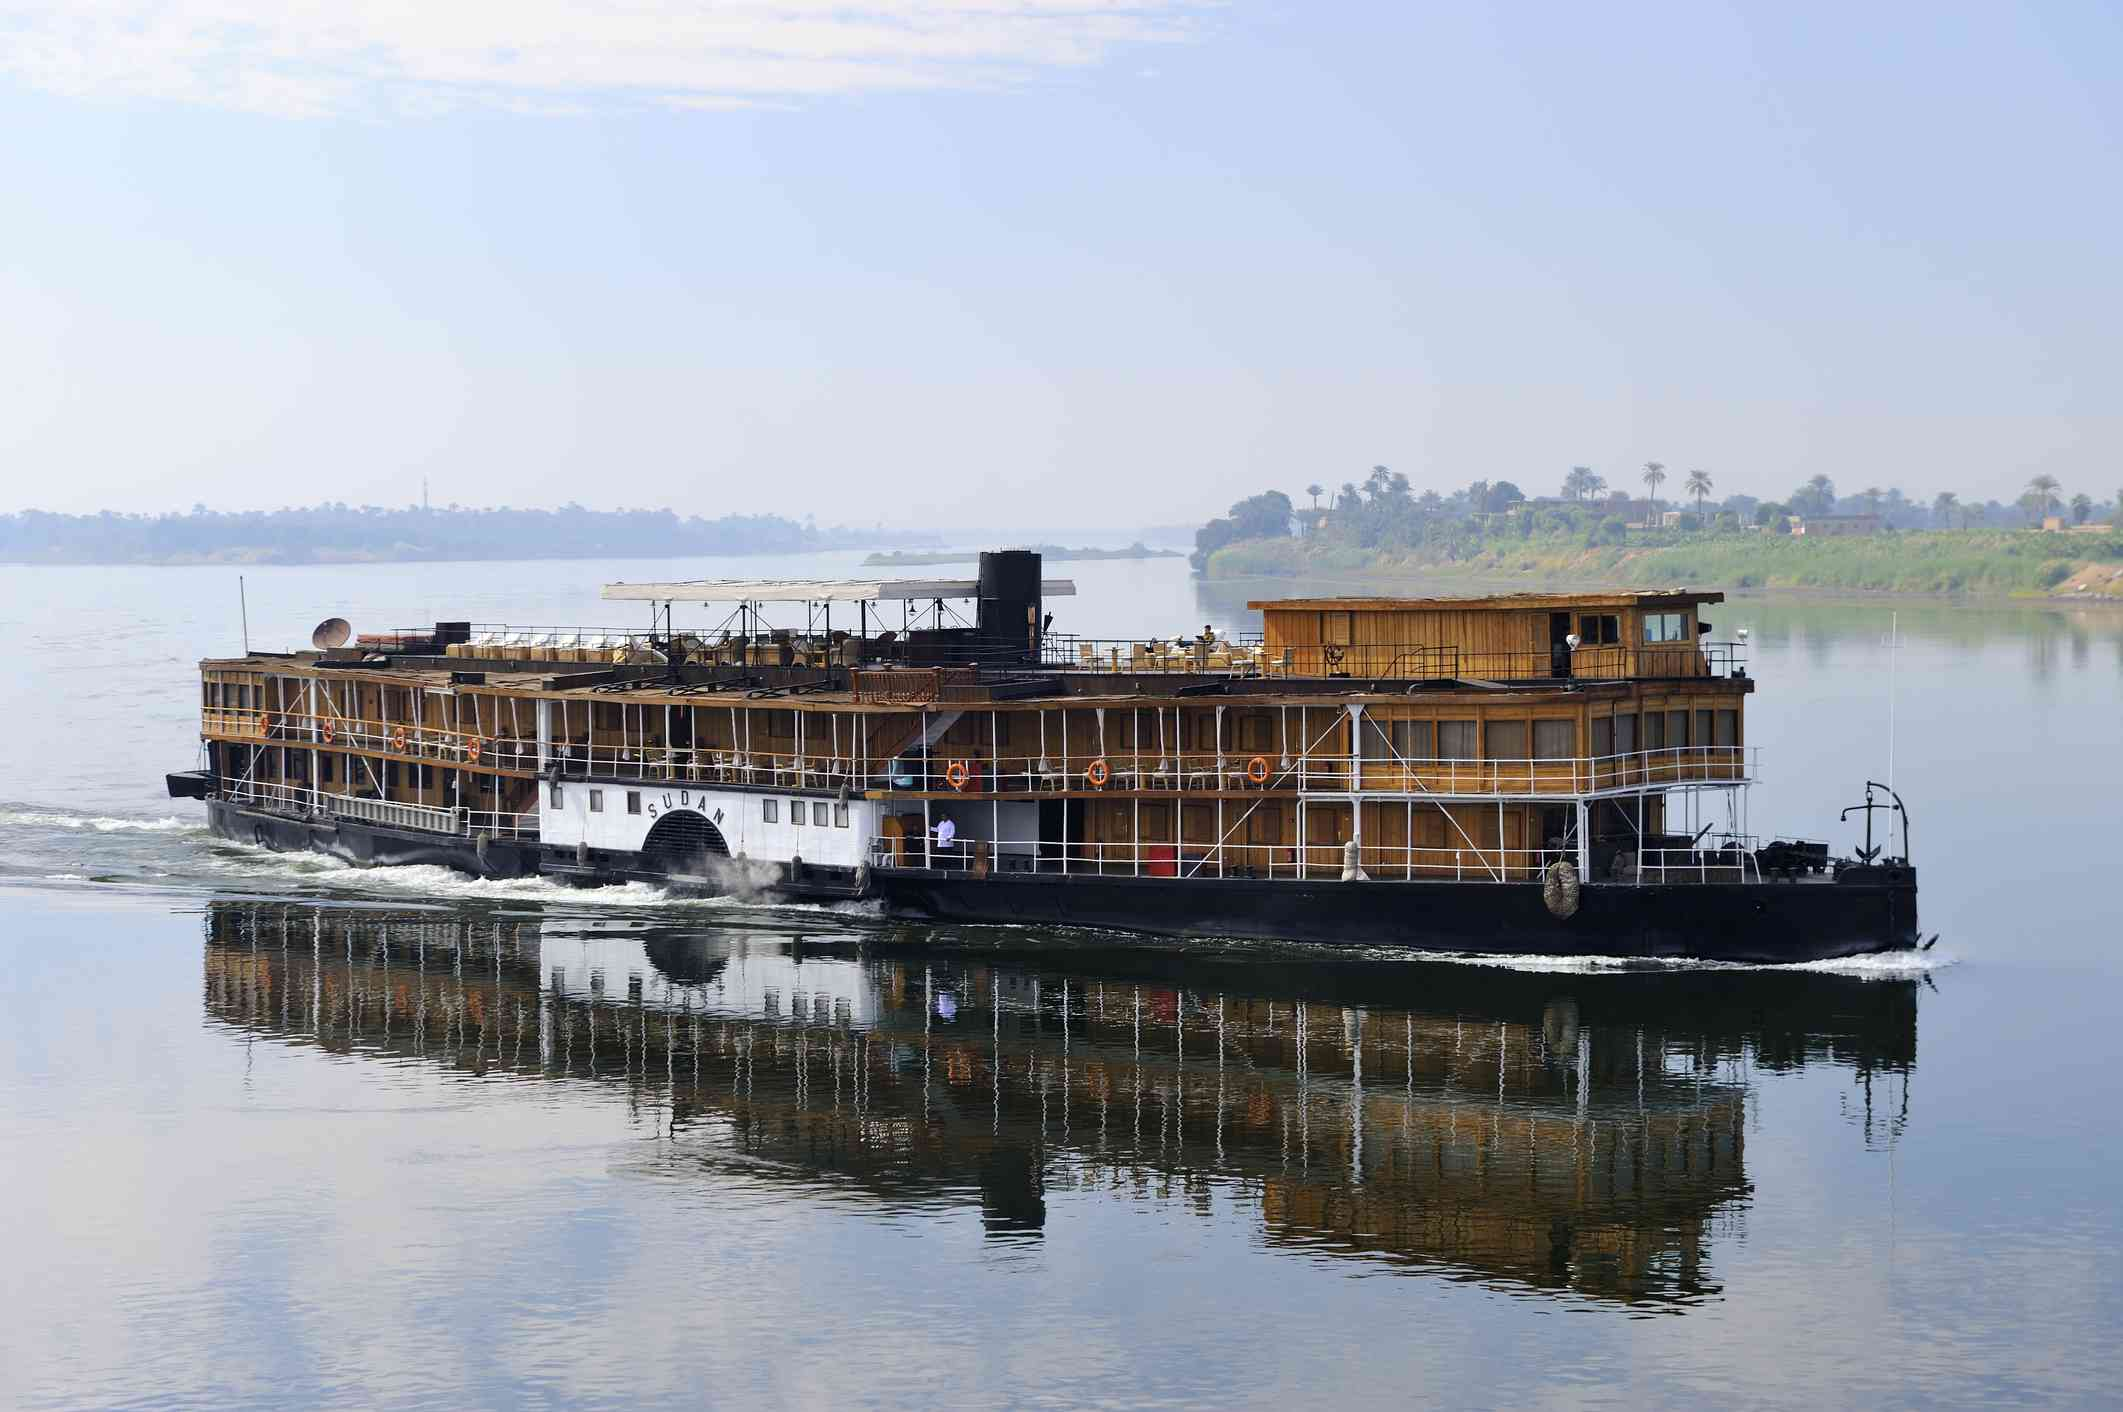 Paddle Steamer on the Nile, Egypt